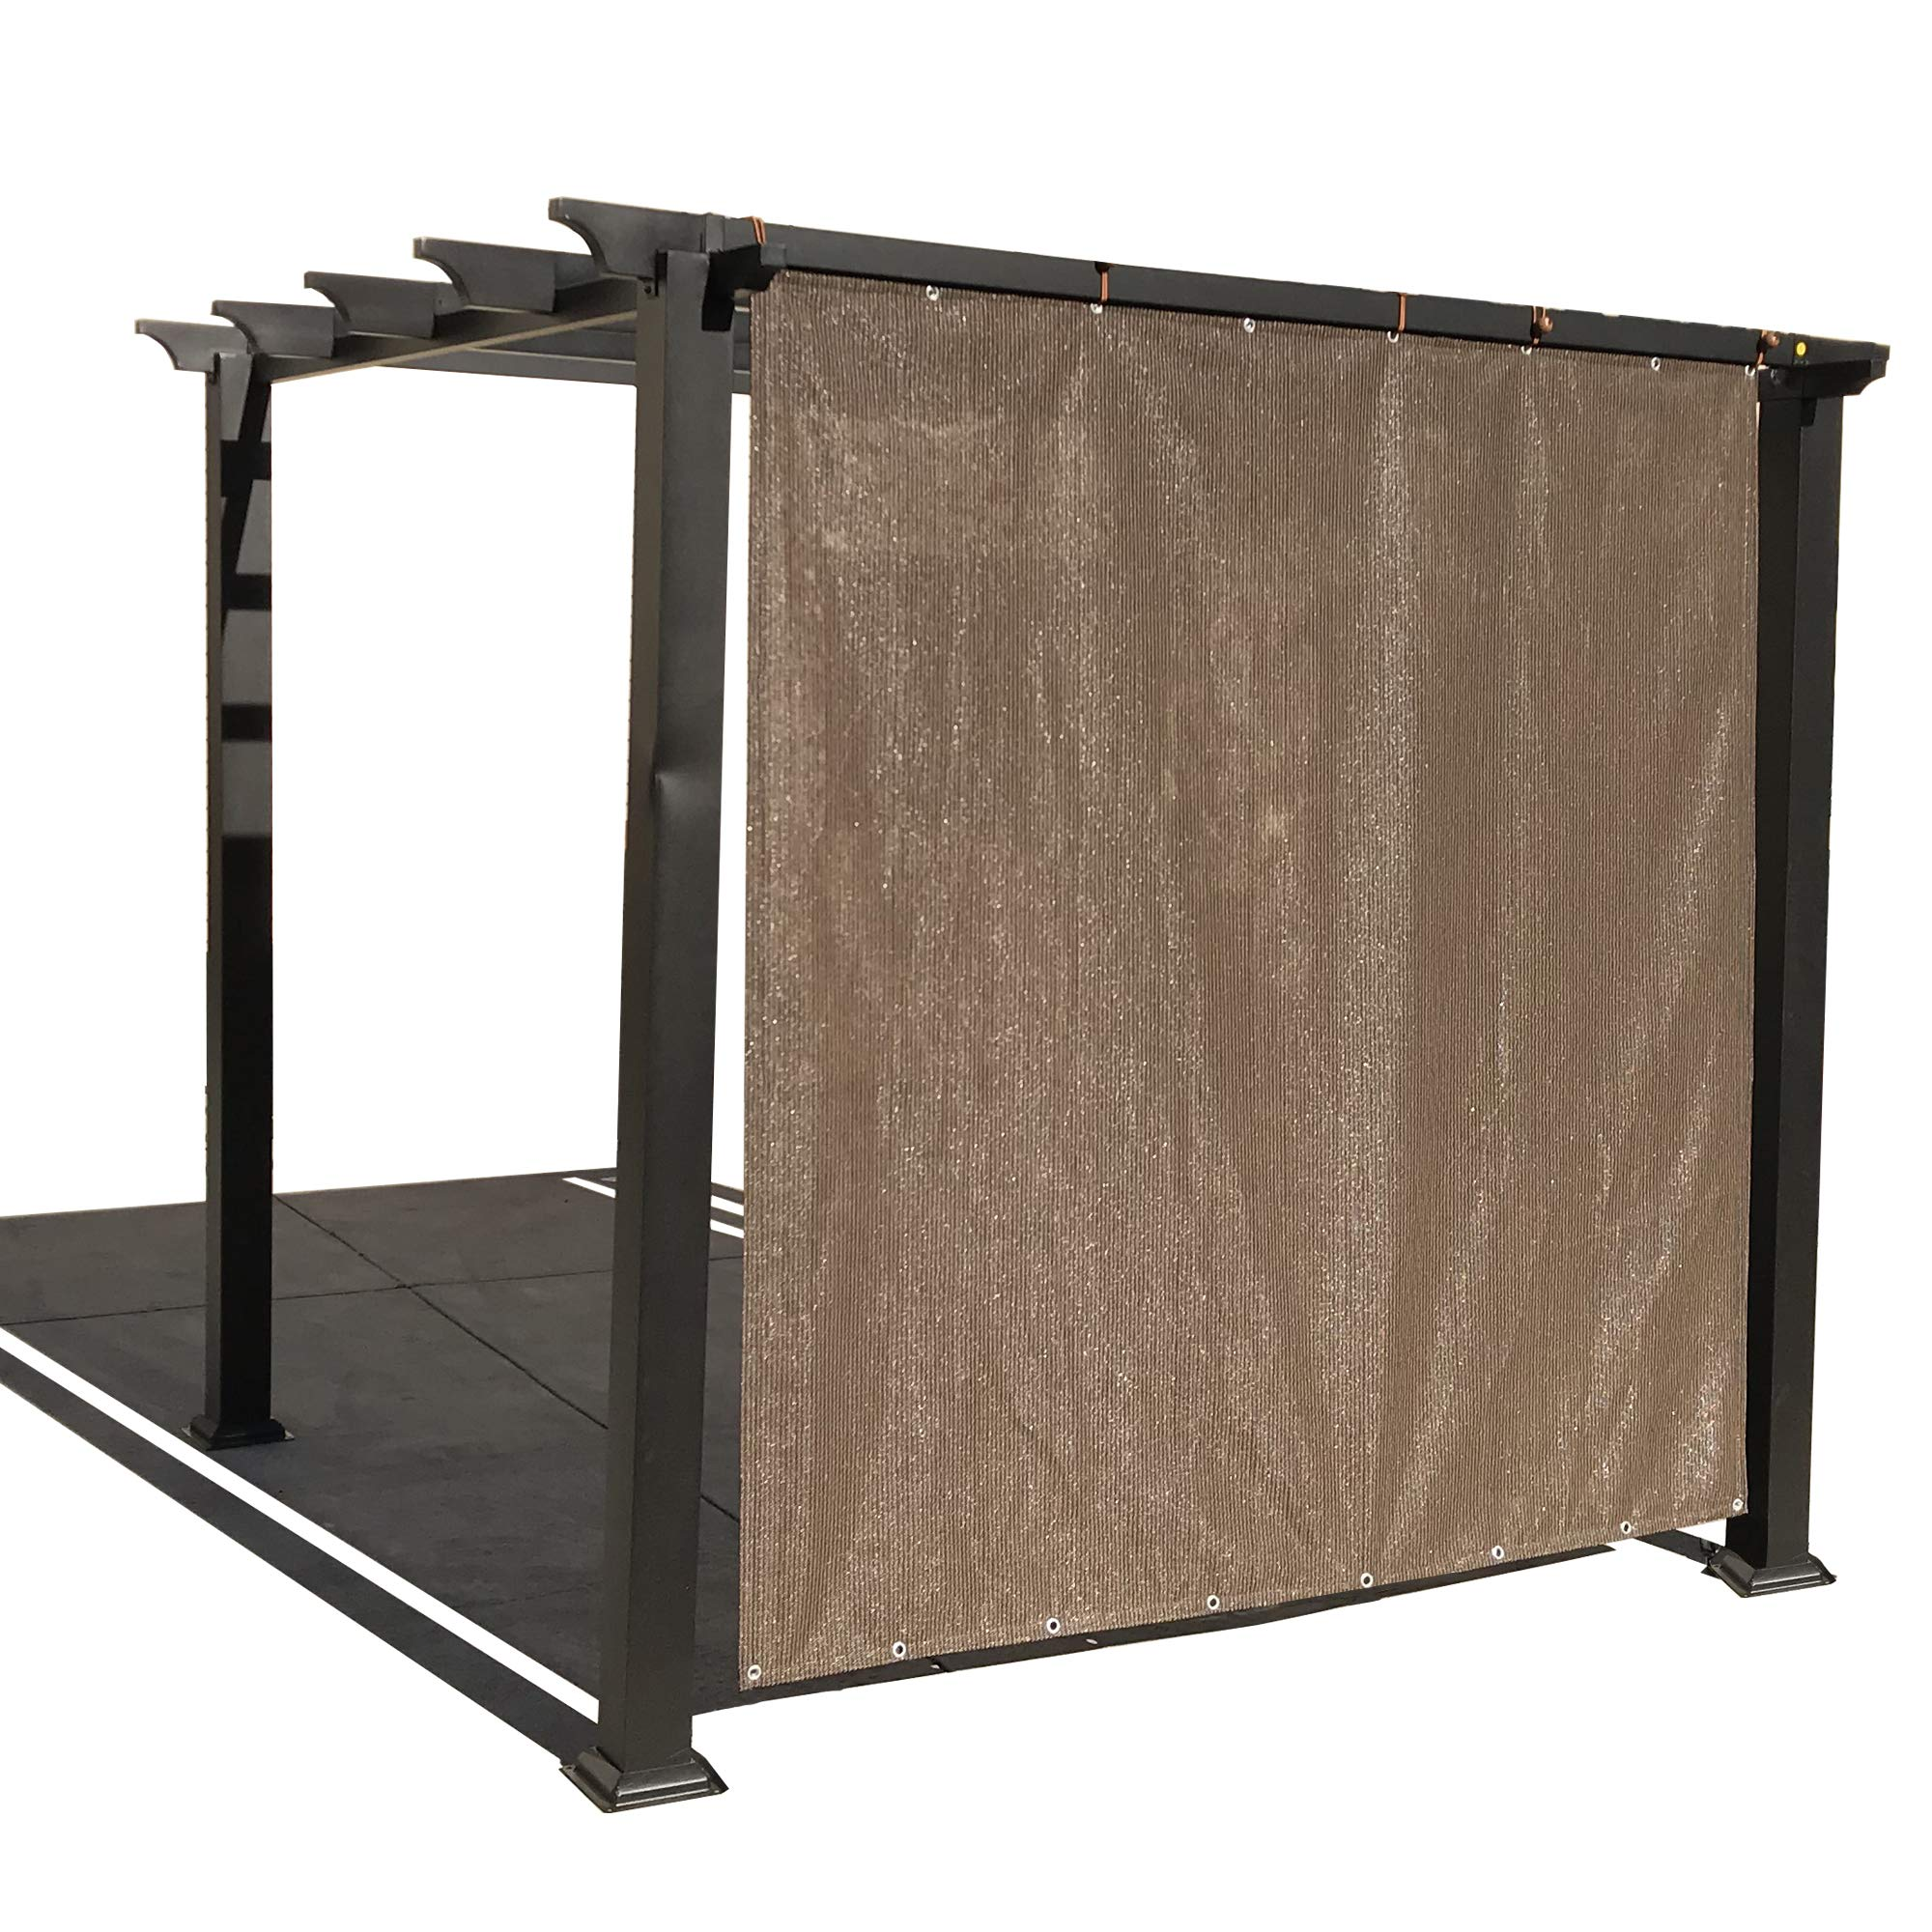 Alion Home Sun Shade Privacy Panel with Grommets on 2 Sides for Patio, Awning, Window, Pergola or Gazebo - Mocha Brown (8' X 8')